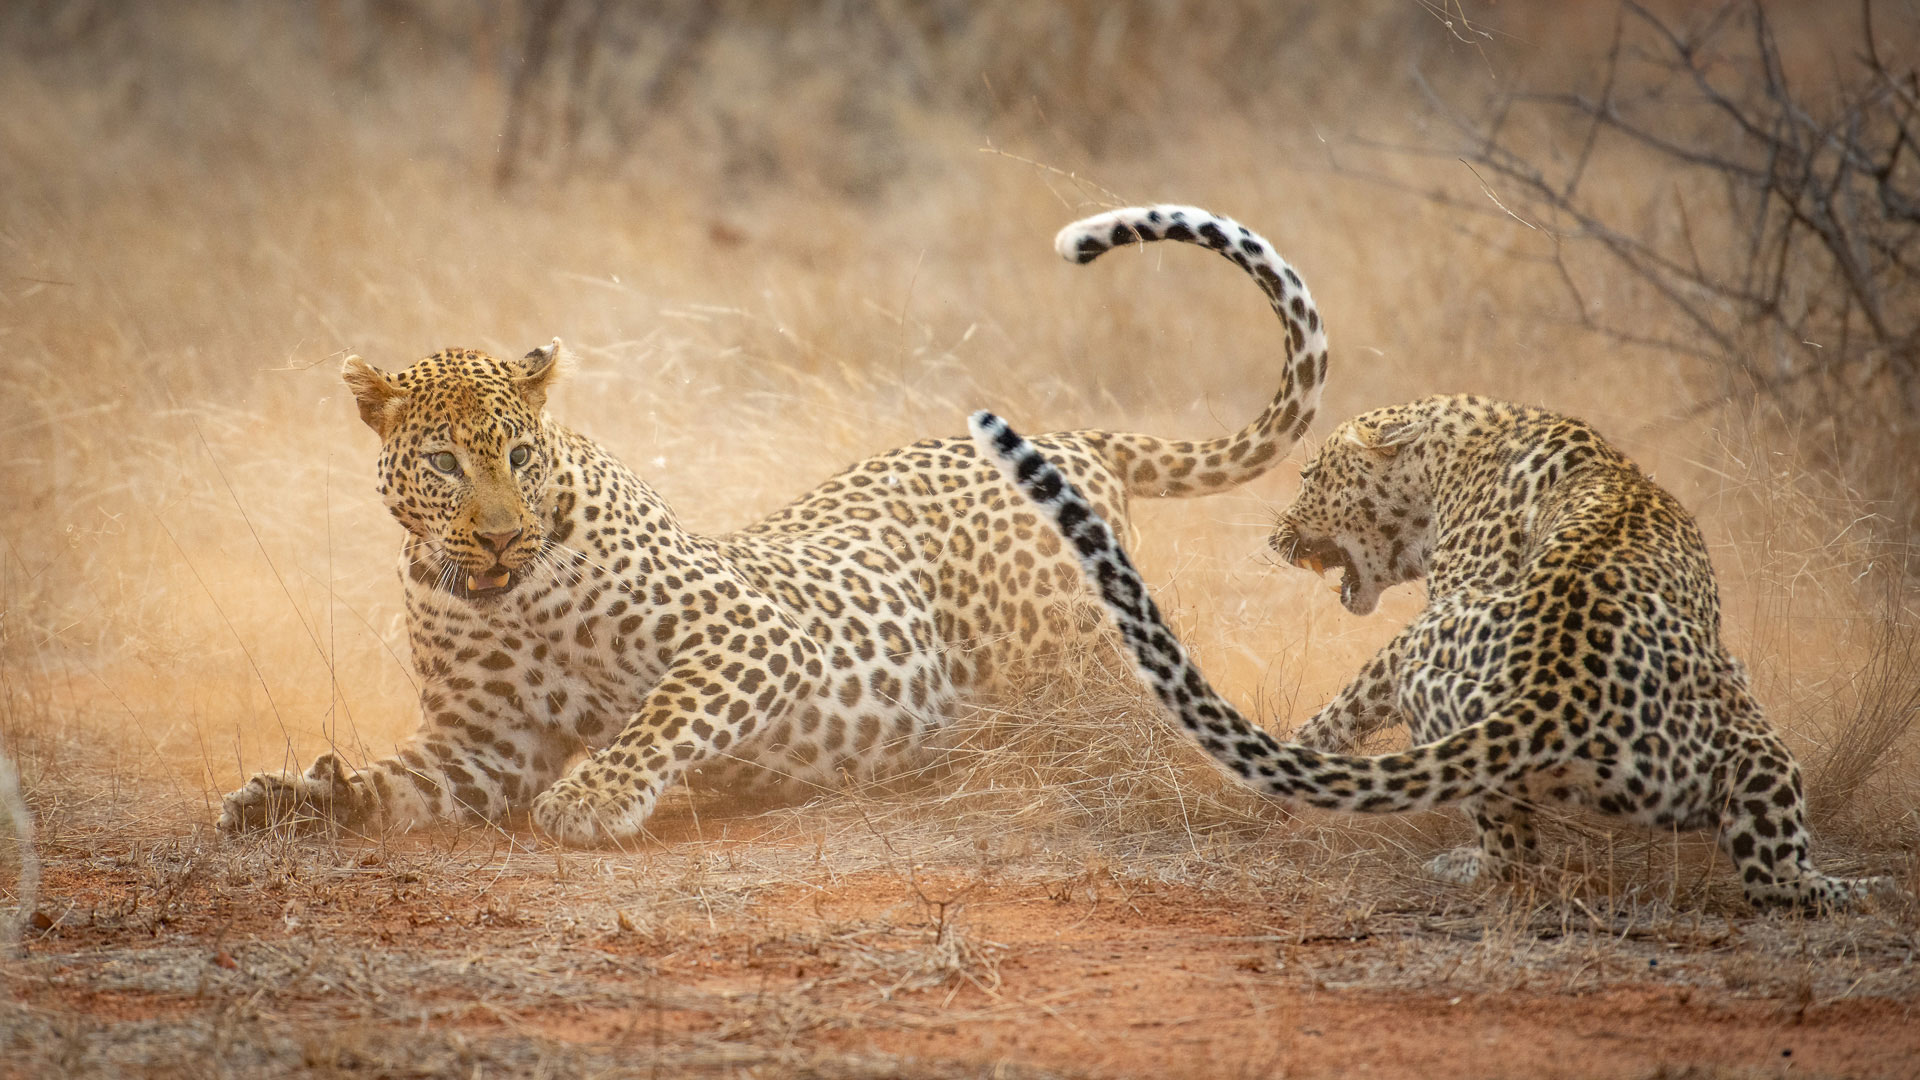 Tanda Tula - leopard fight in the Greater Kruger, South Africa